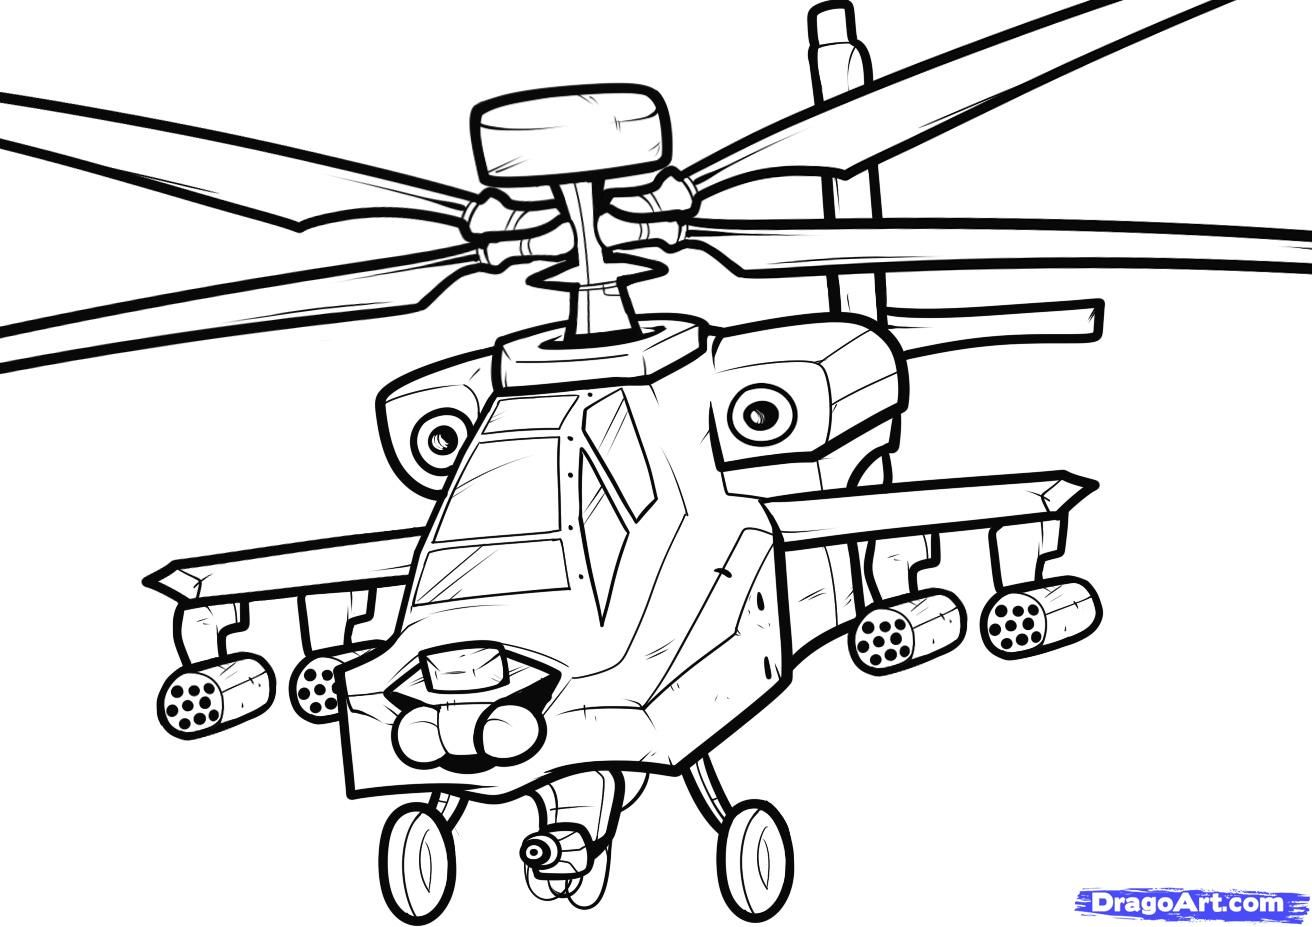 airplane and helicopter coloring pages pictures of tanks to color how to draw an apache apache coloring airplane and pages helicopter